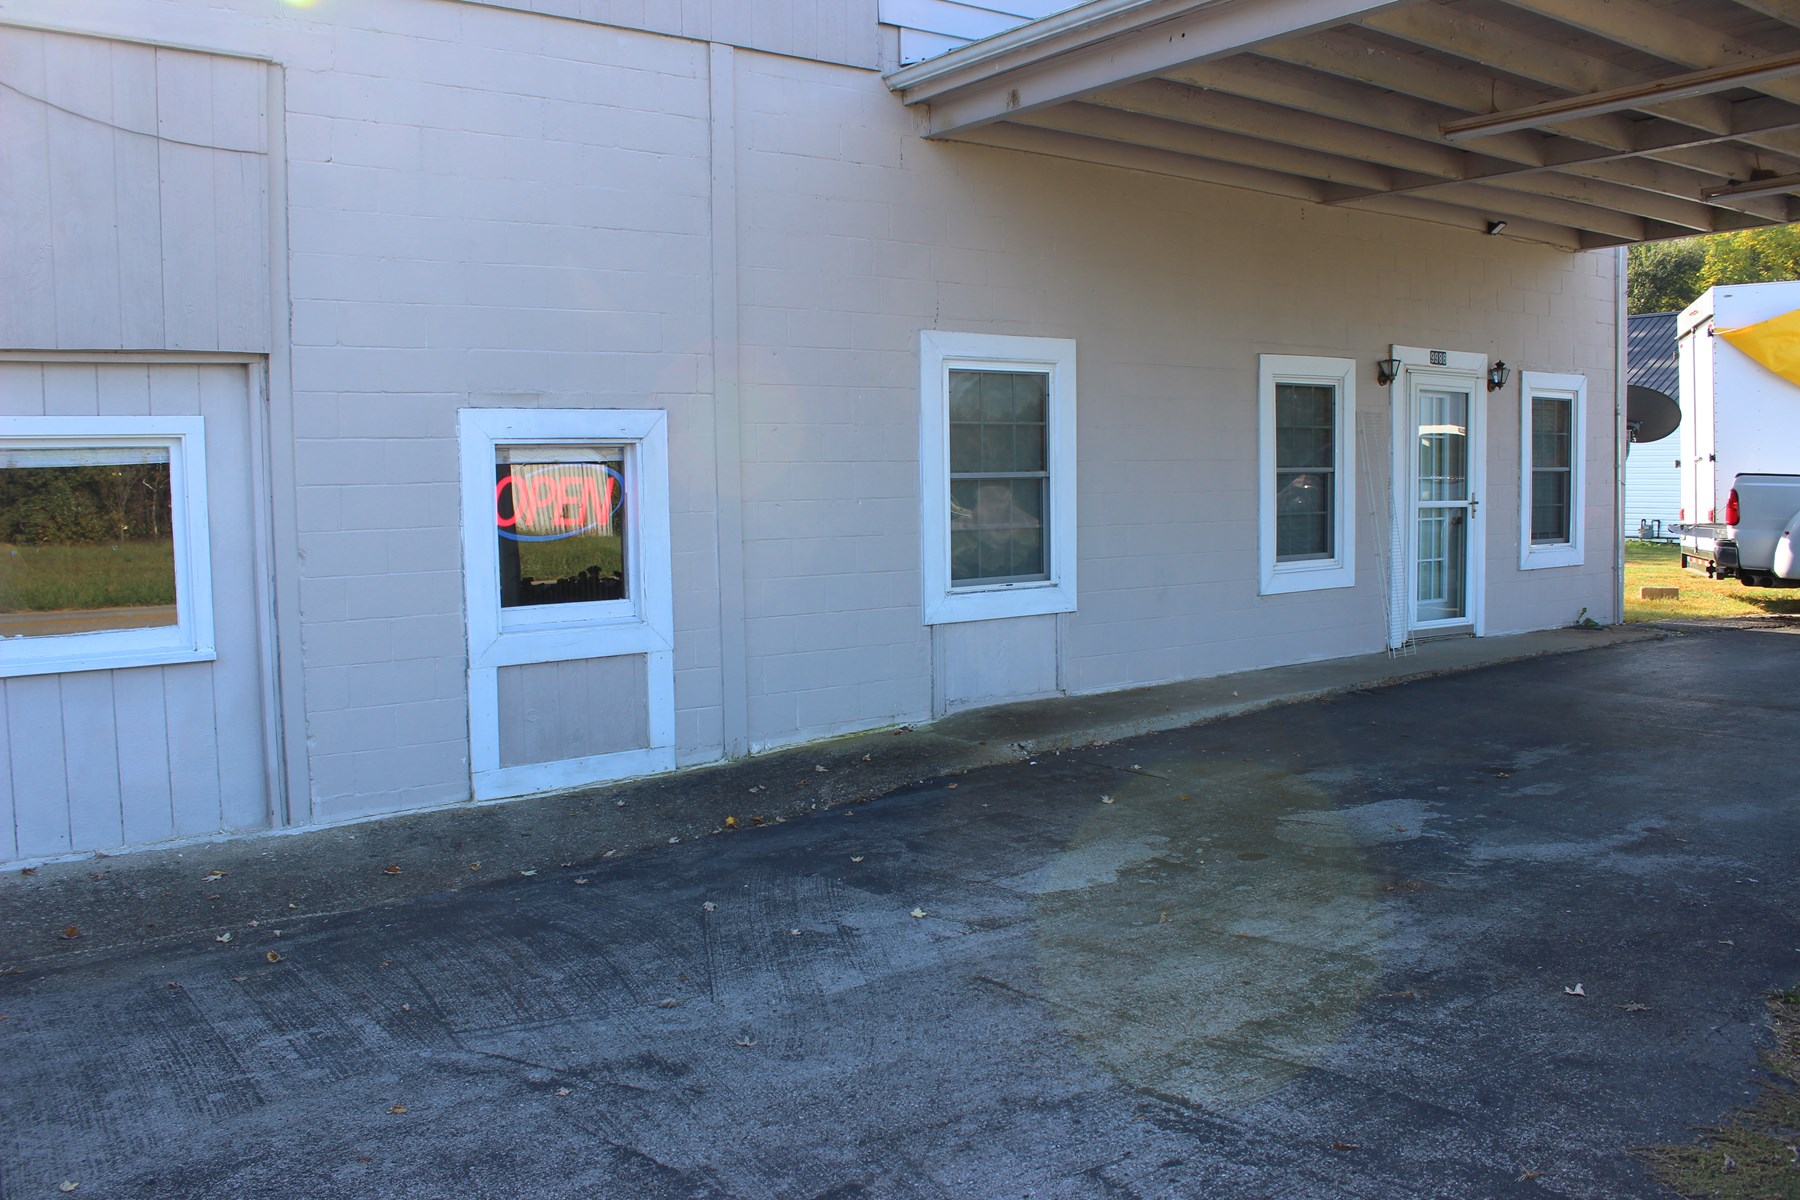 COMMERCIAL BUILDING WITH APARTMENT IN CENTRAL KENTUCKY